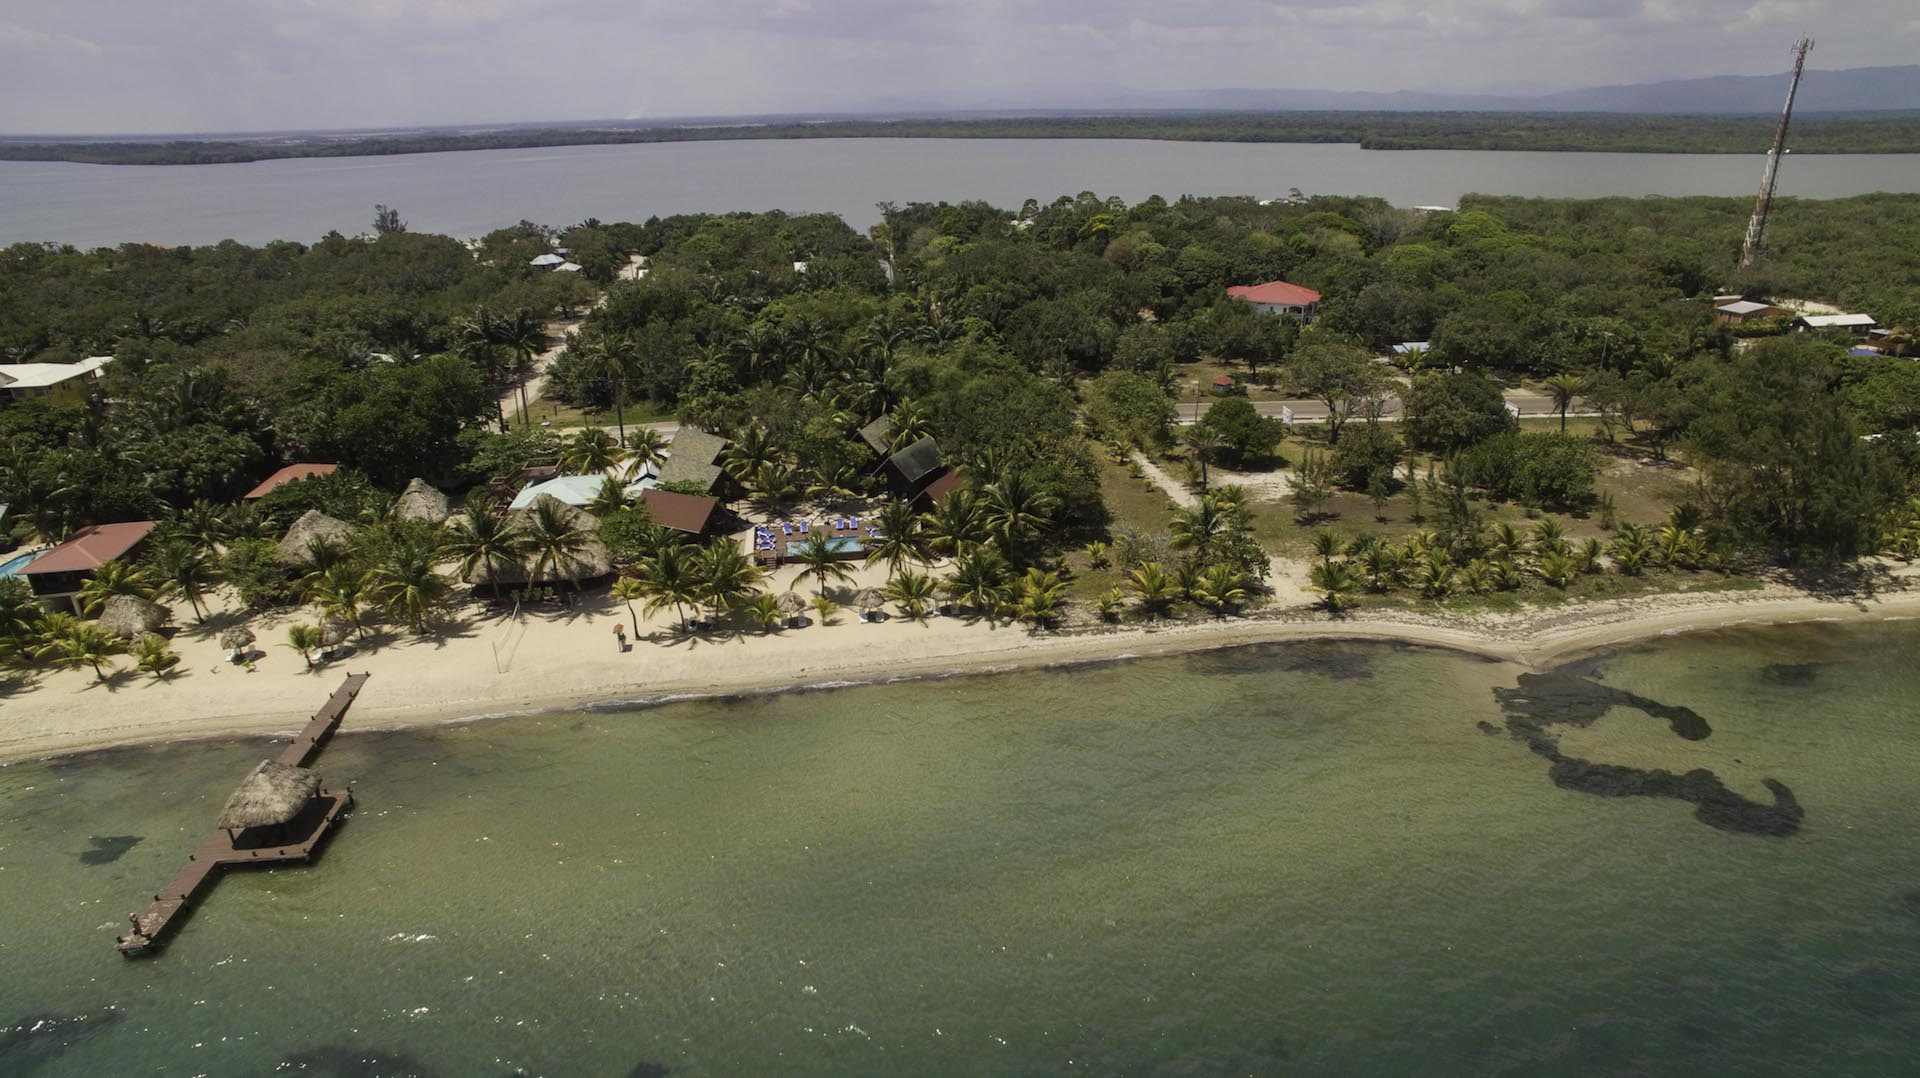 Belize Beachfront Resort with Beach Houses